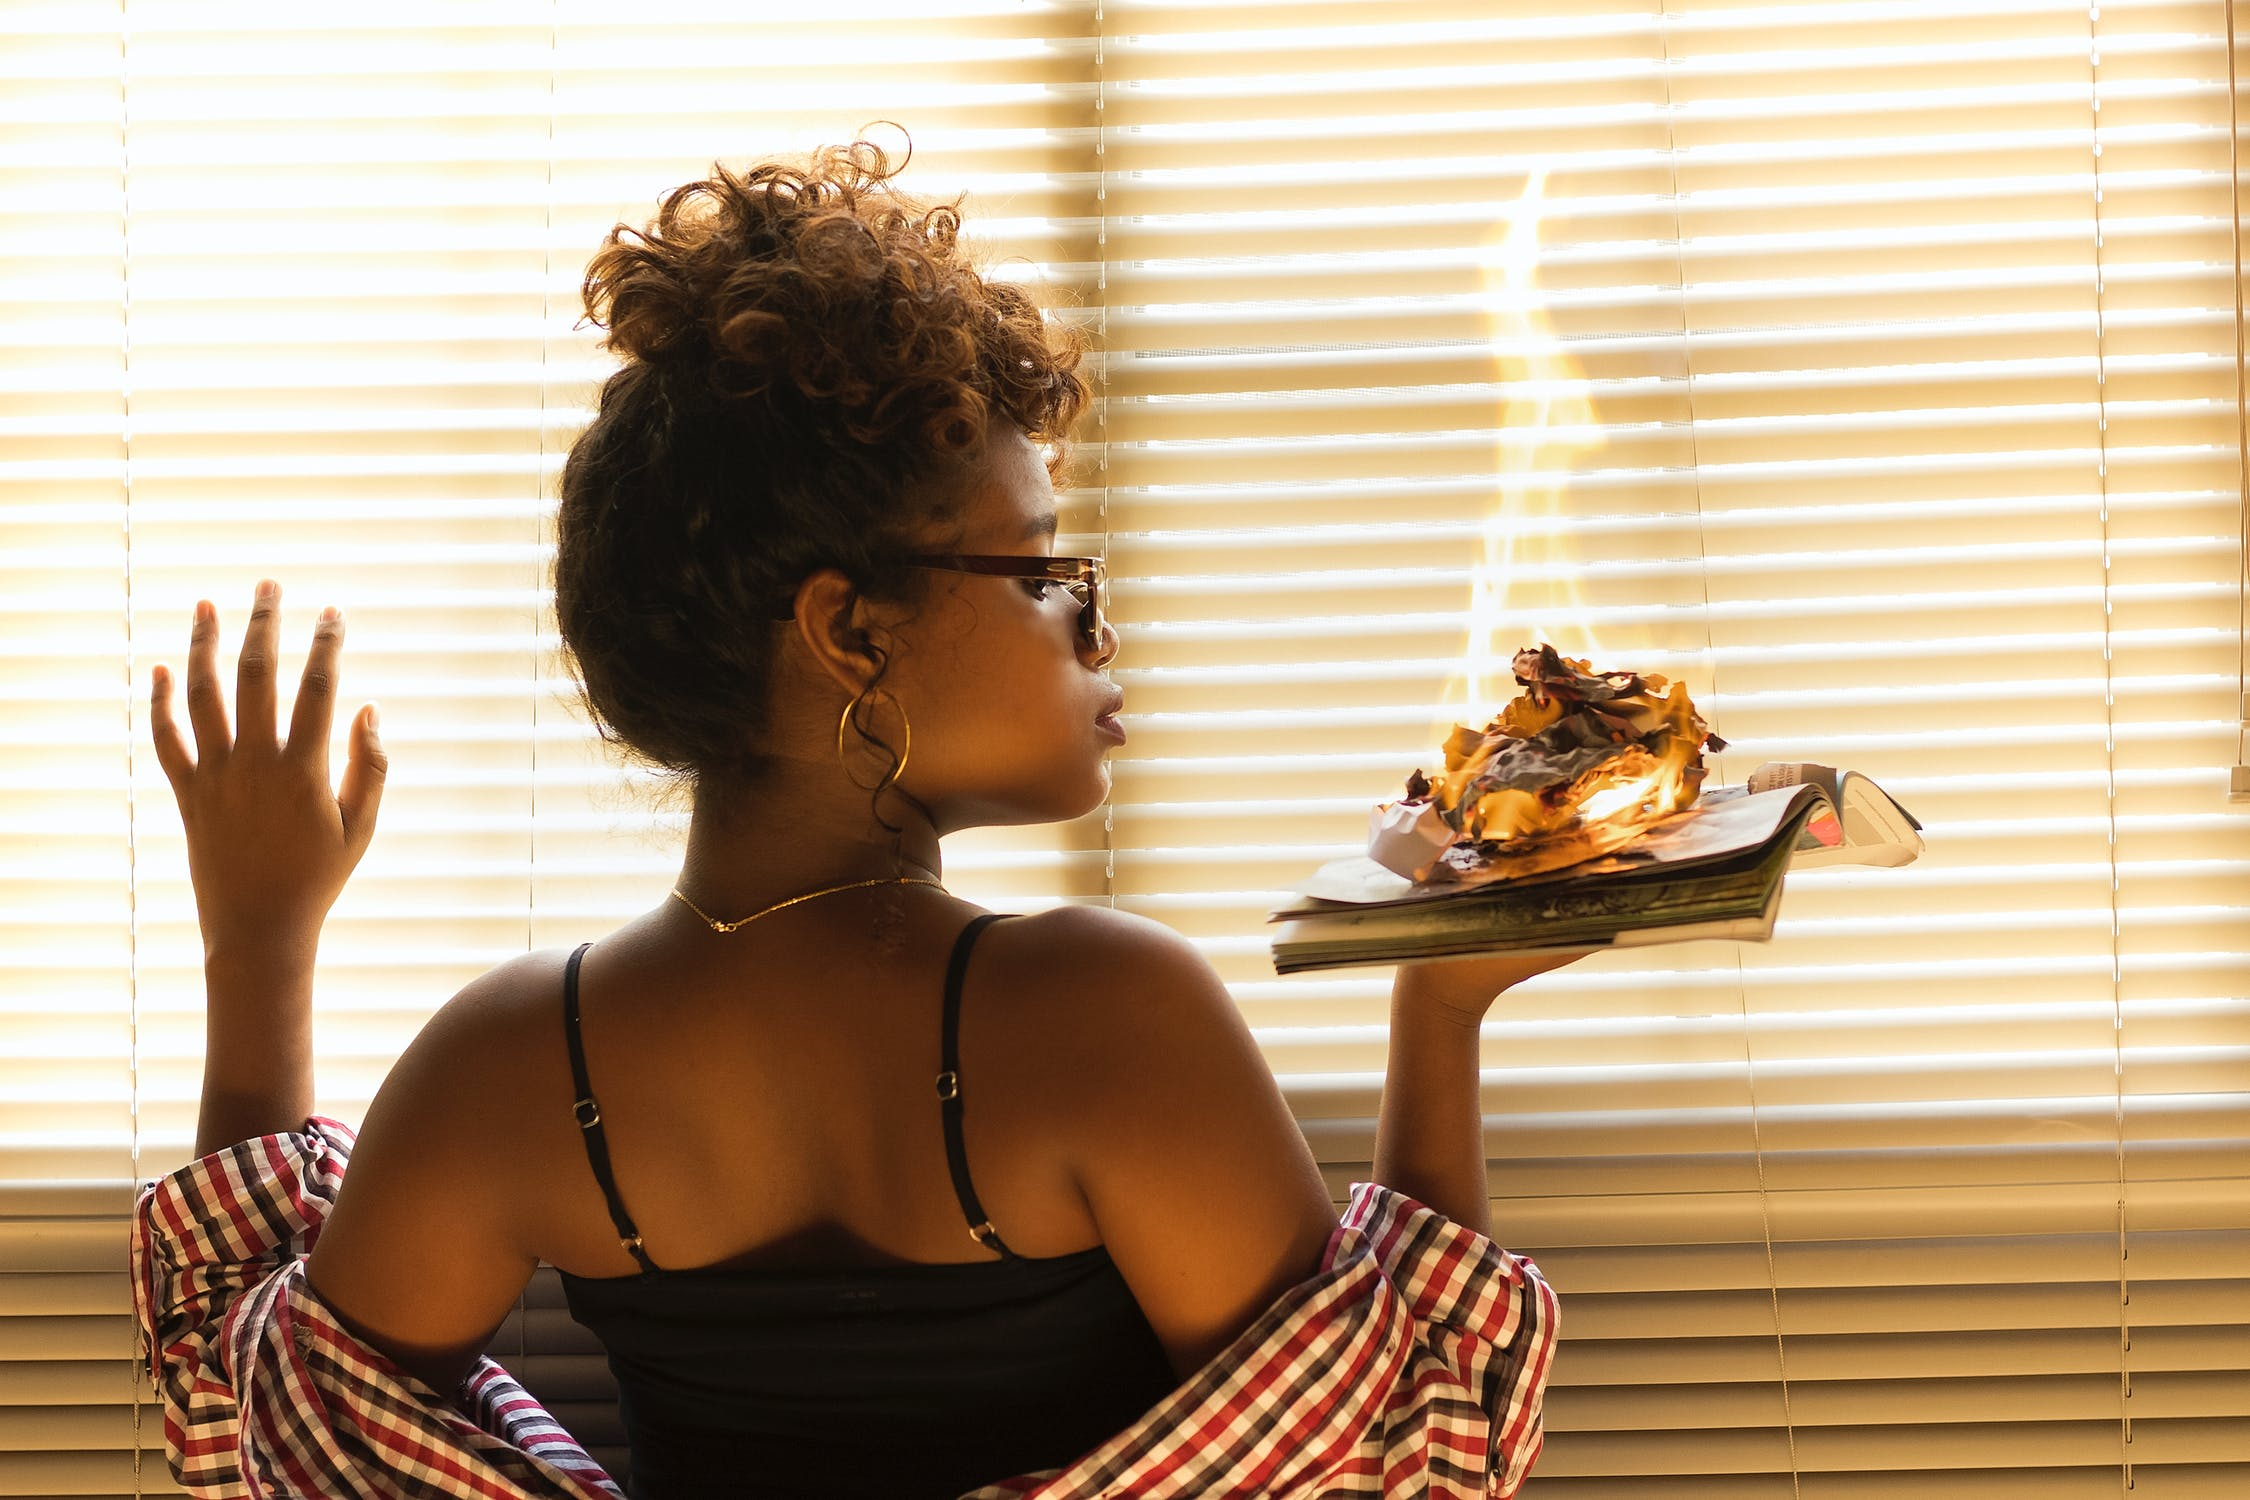 Black woman holding book with burning paper